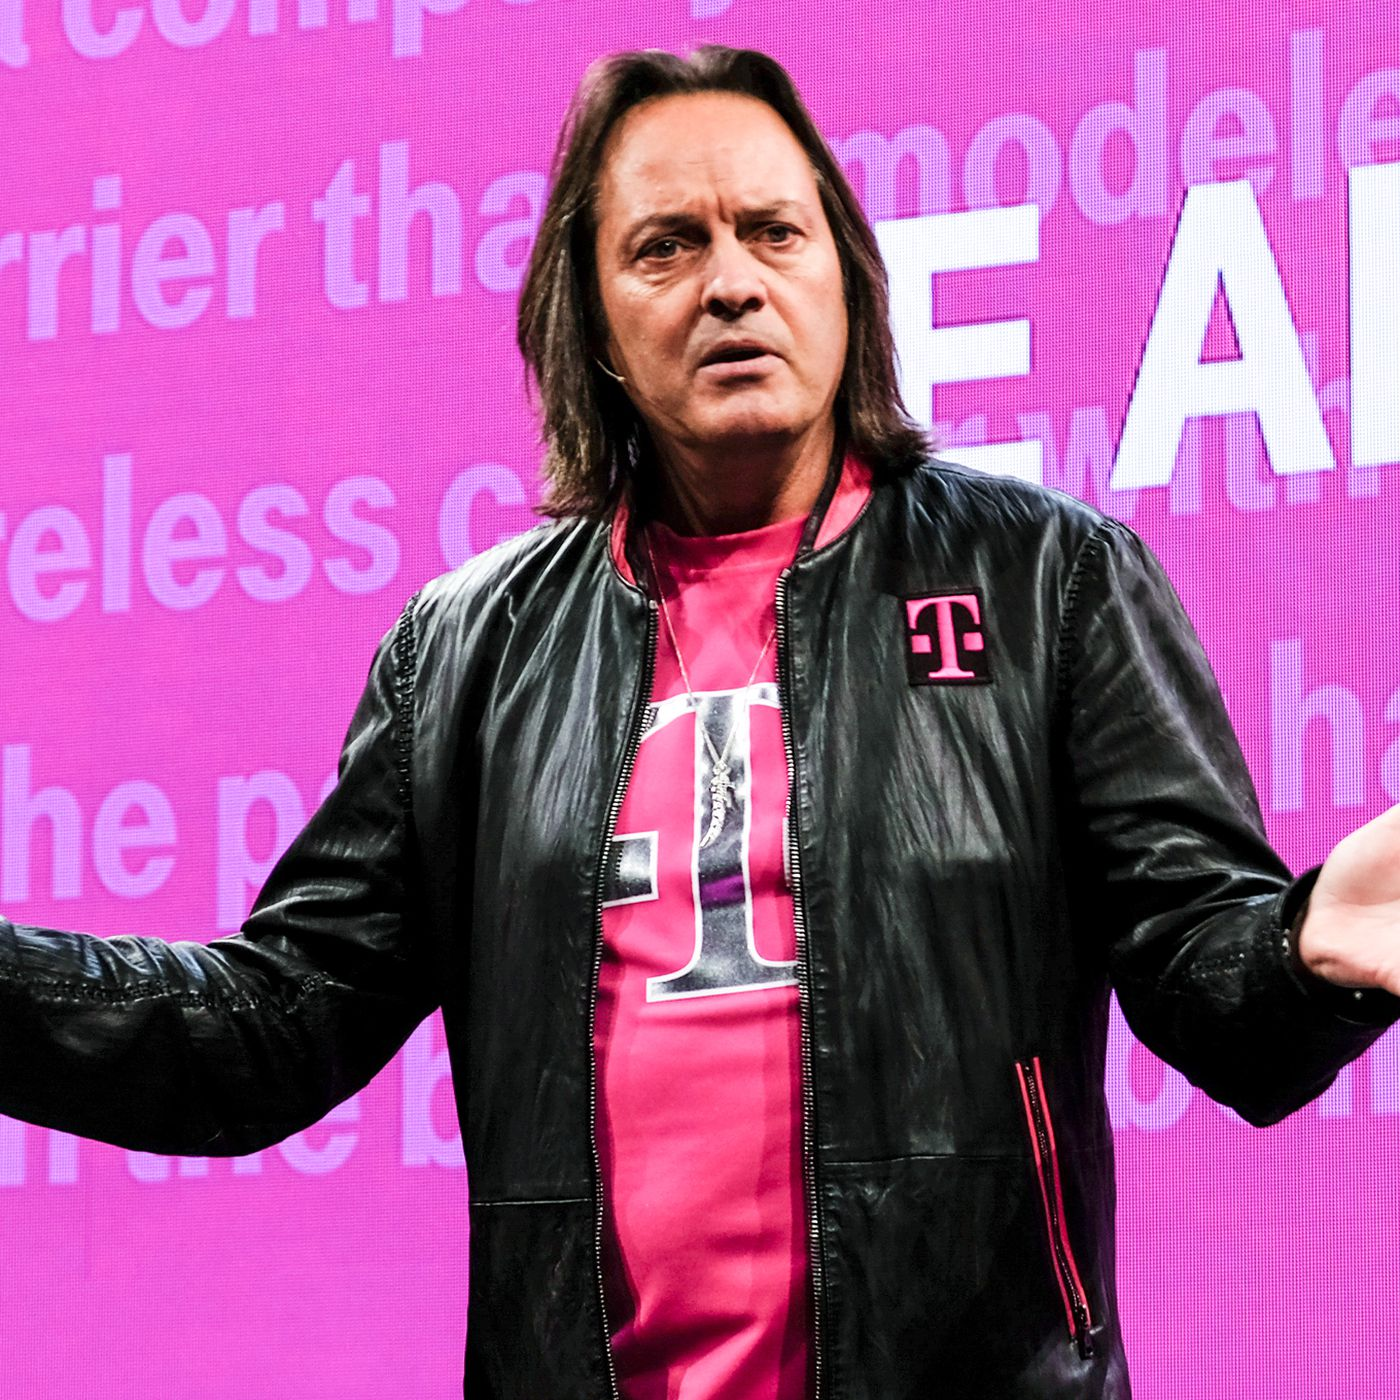 T-Mobile's good unlimited data plan just got $5 more expensive - The